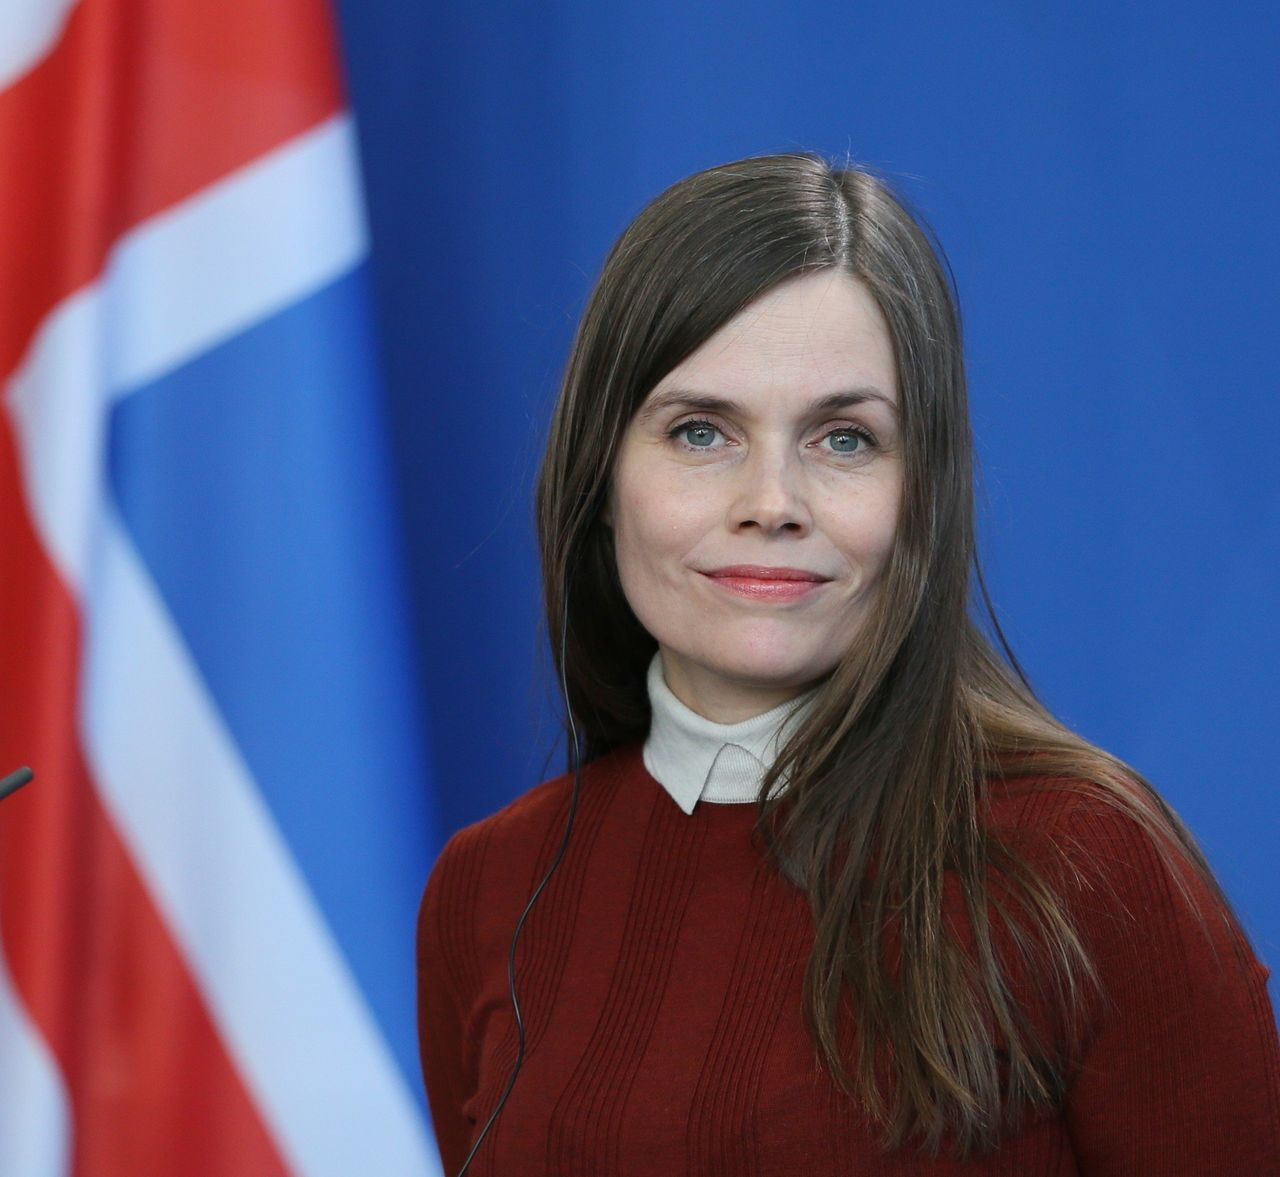 Iceland's current prime minister, Katrín Jakobsdóttir, is the second woman to hold that post.